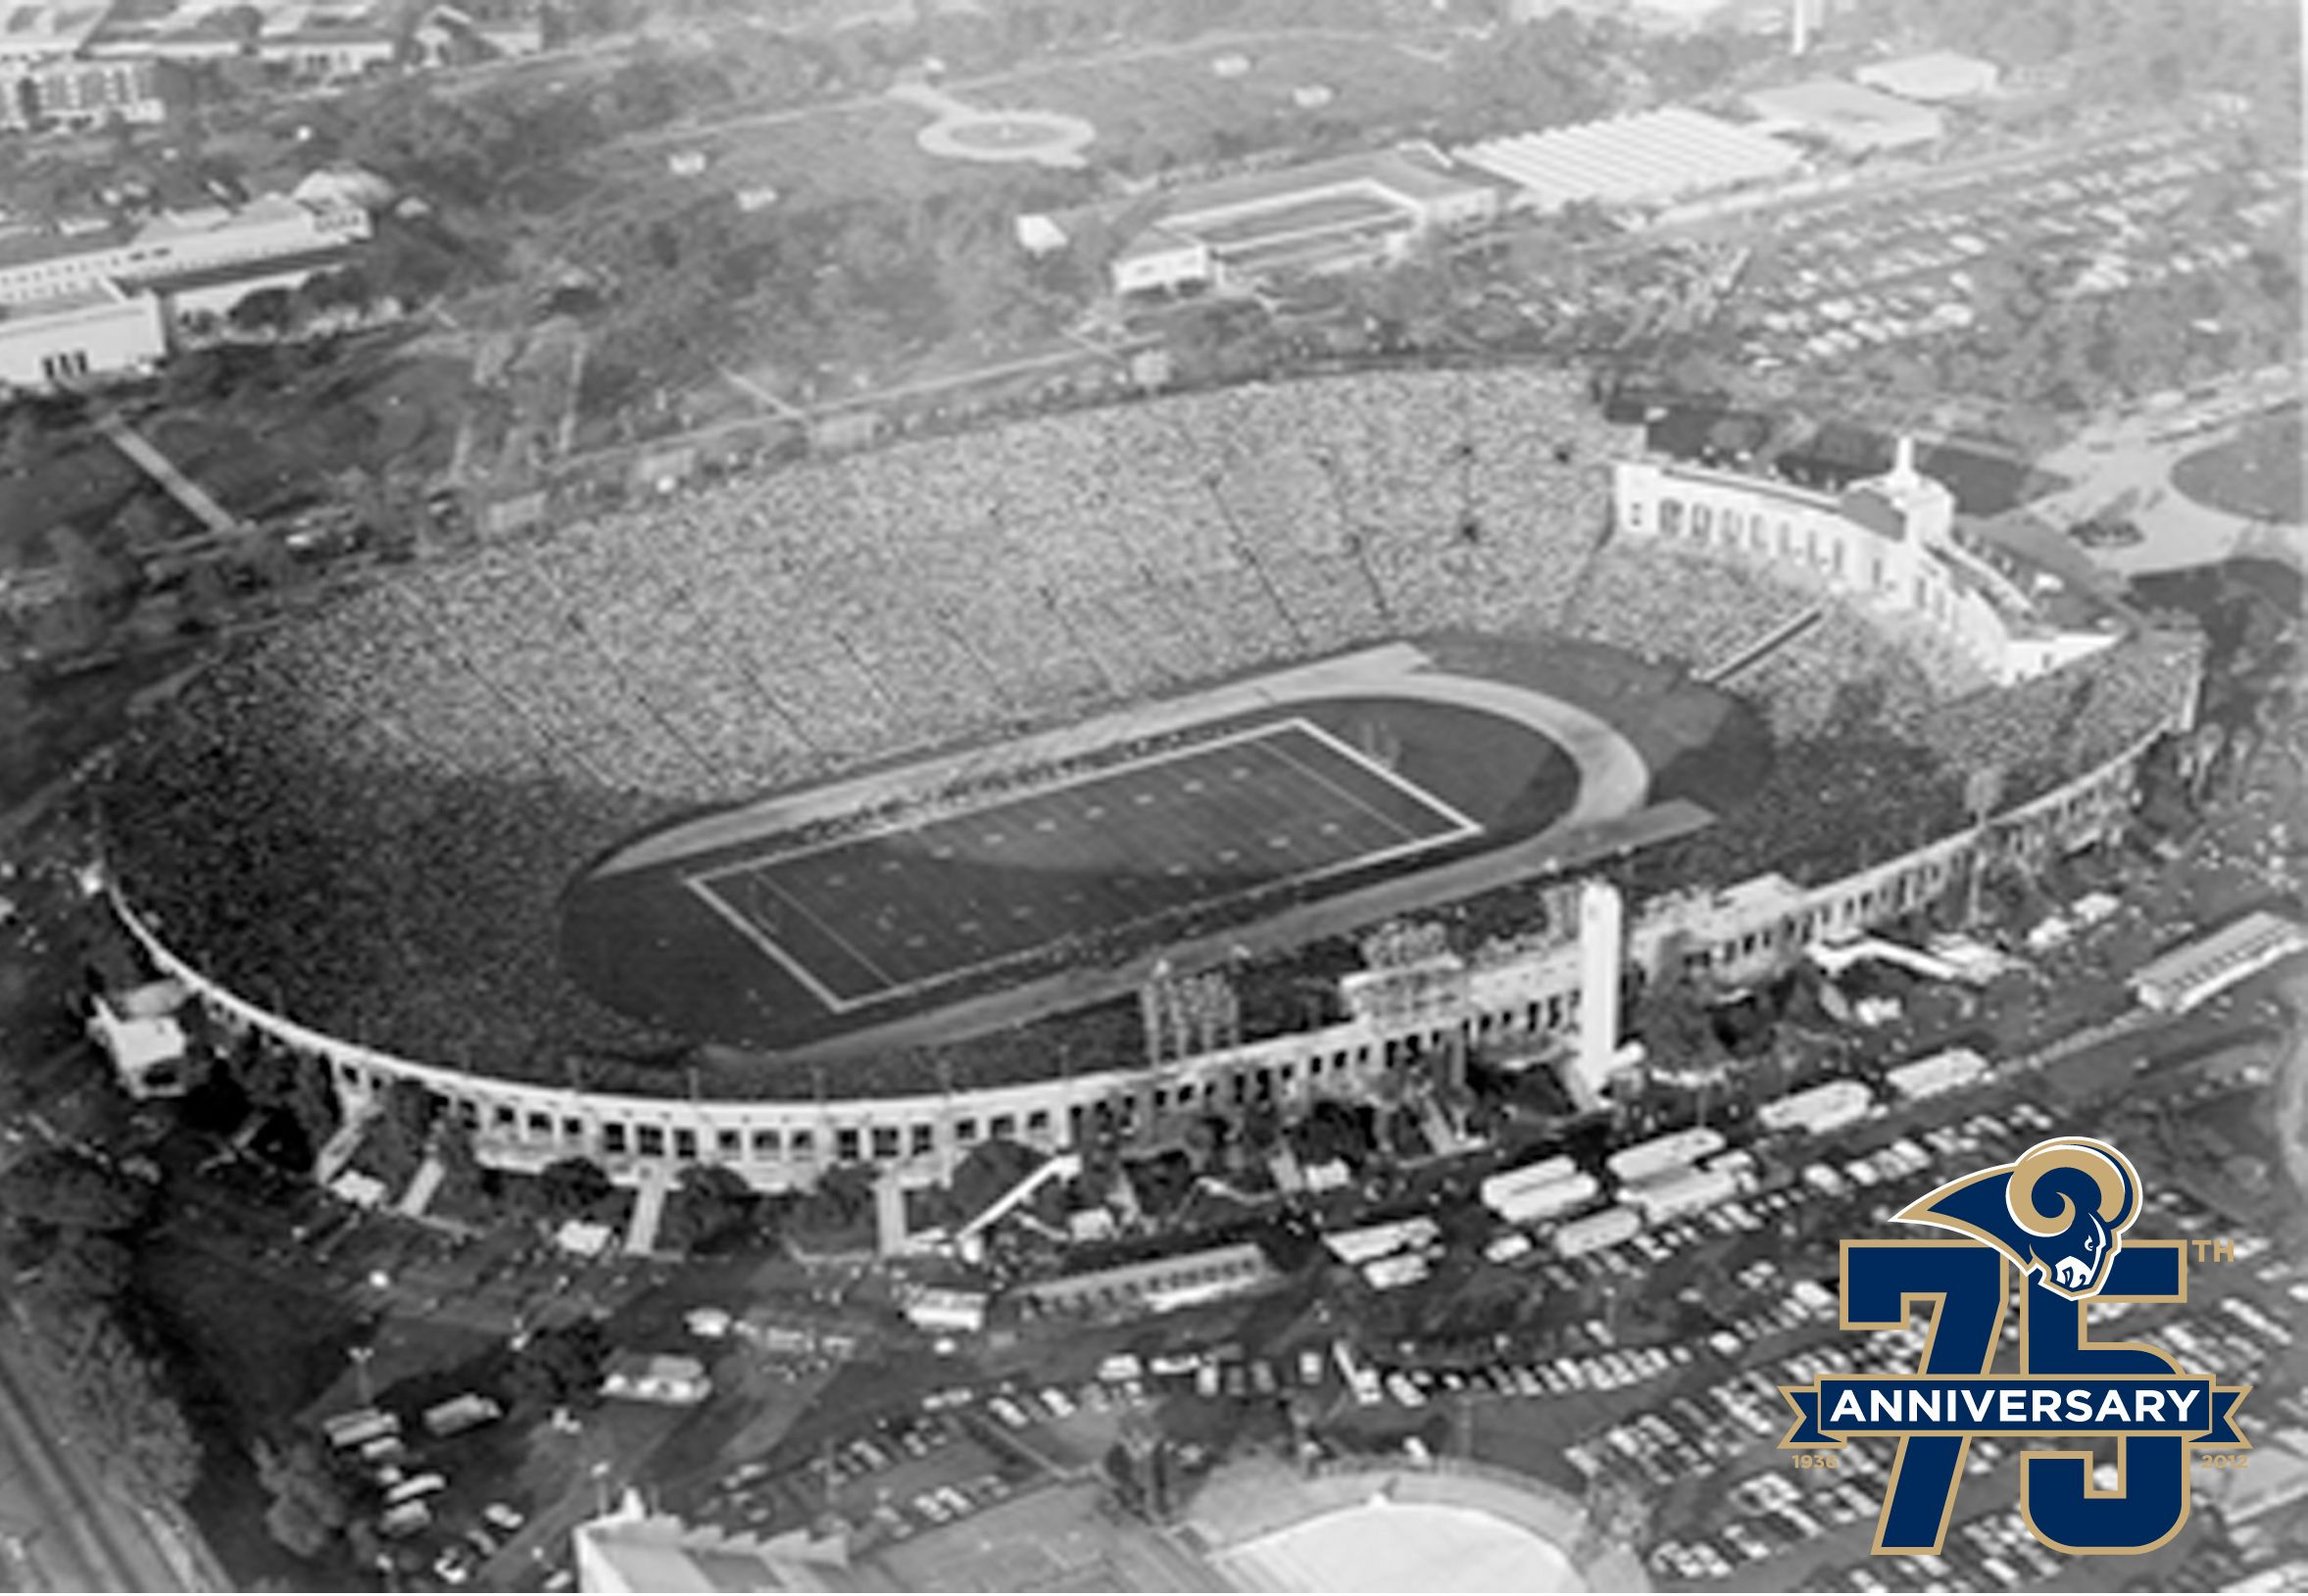 The Los Angeles Rams Called The Coliseum Home From 1946 1979 The Rams Saw Crowds Of More Than 80 000 People 22 Tim Nfl Stadiums Rams Football Los Angeles Rams